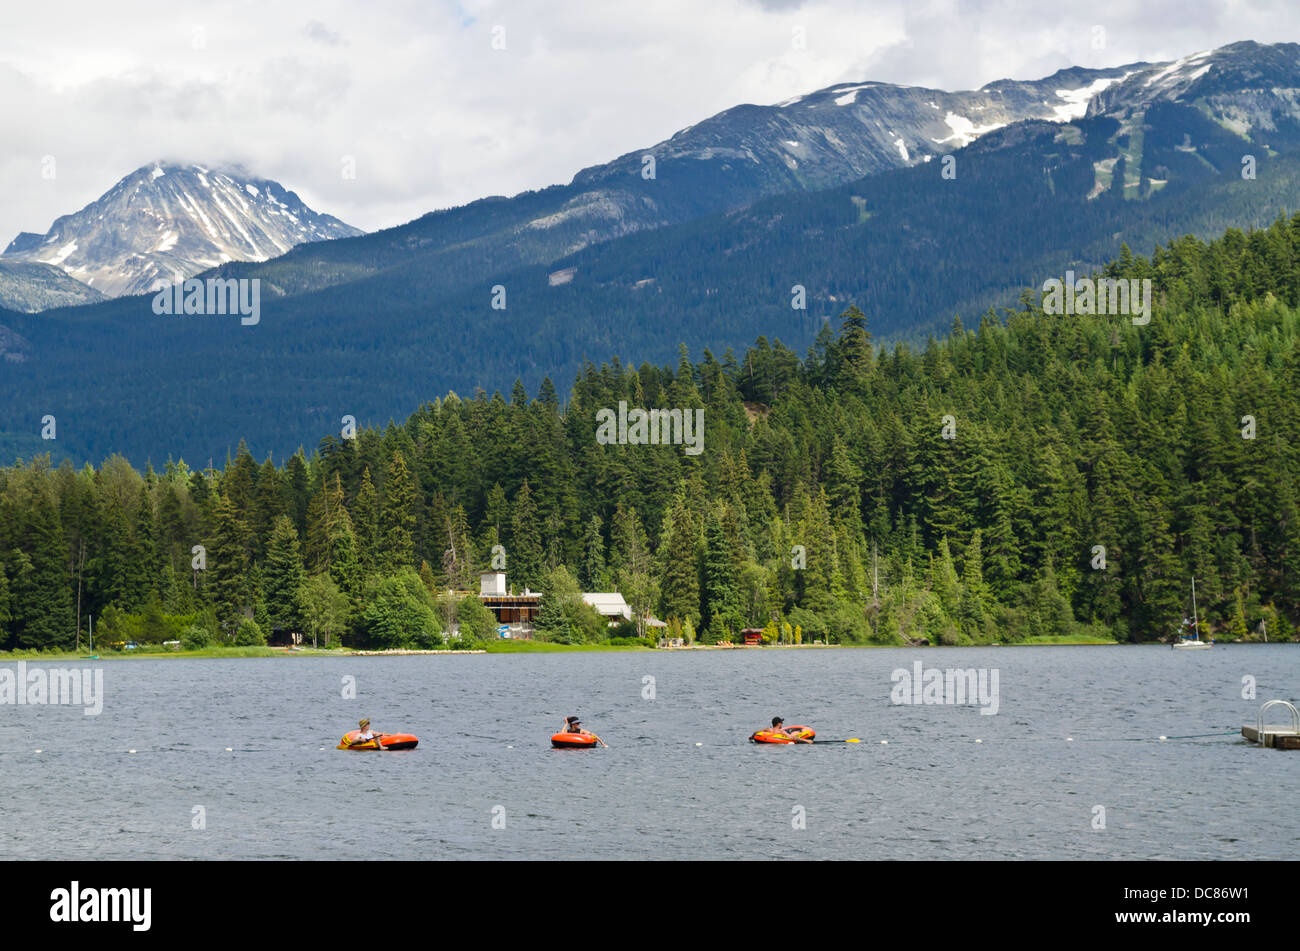 People having fun floating on on Alta Lake in Whistler, BC, Canada, in the summer. Mountains and forest in the background. - Stock Image